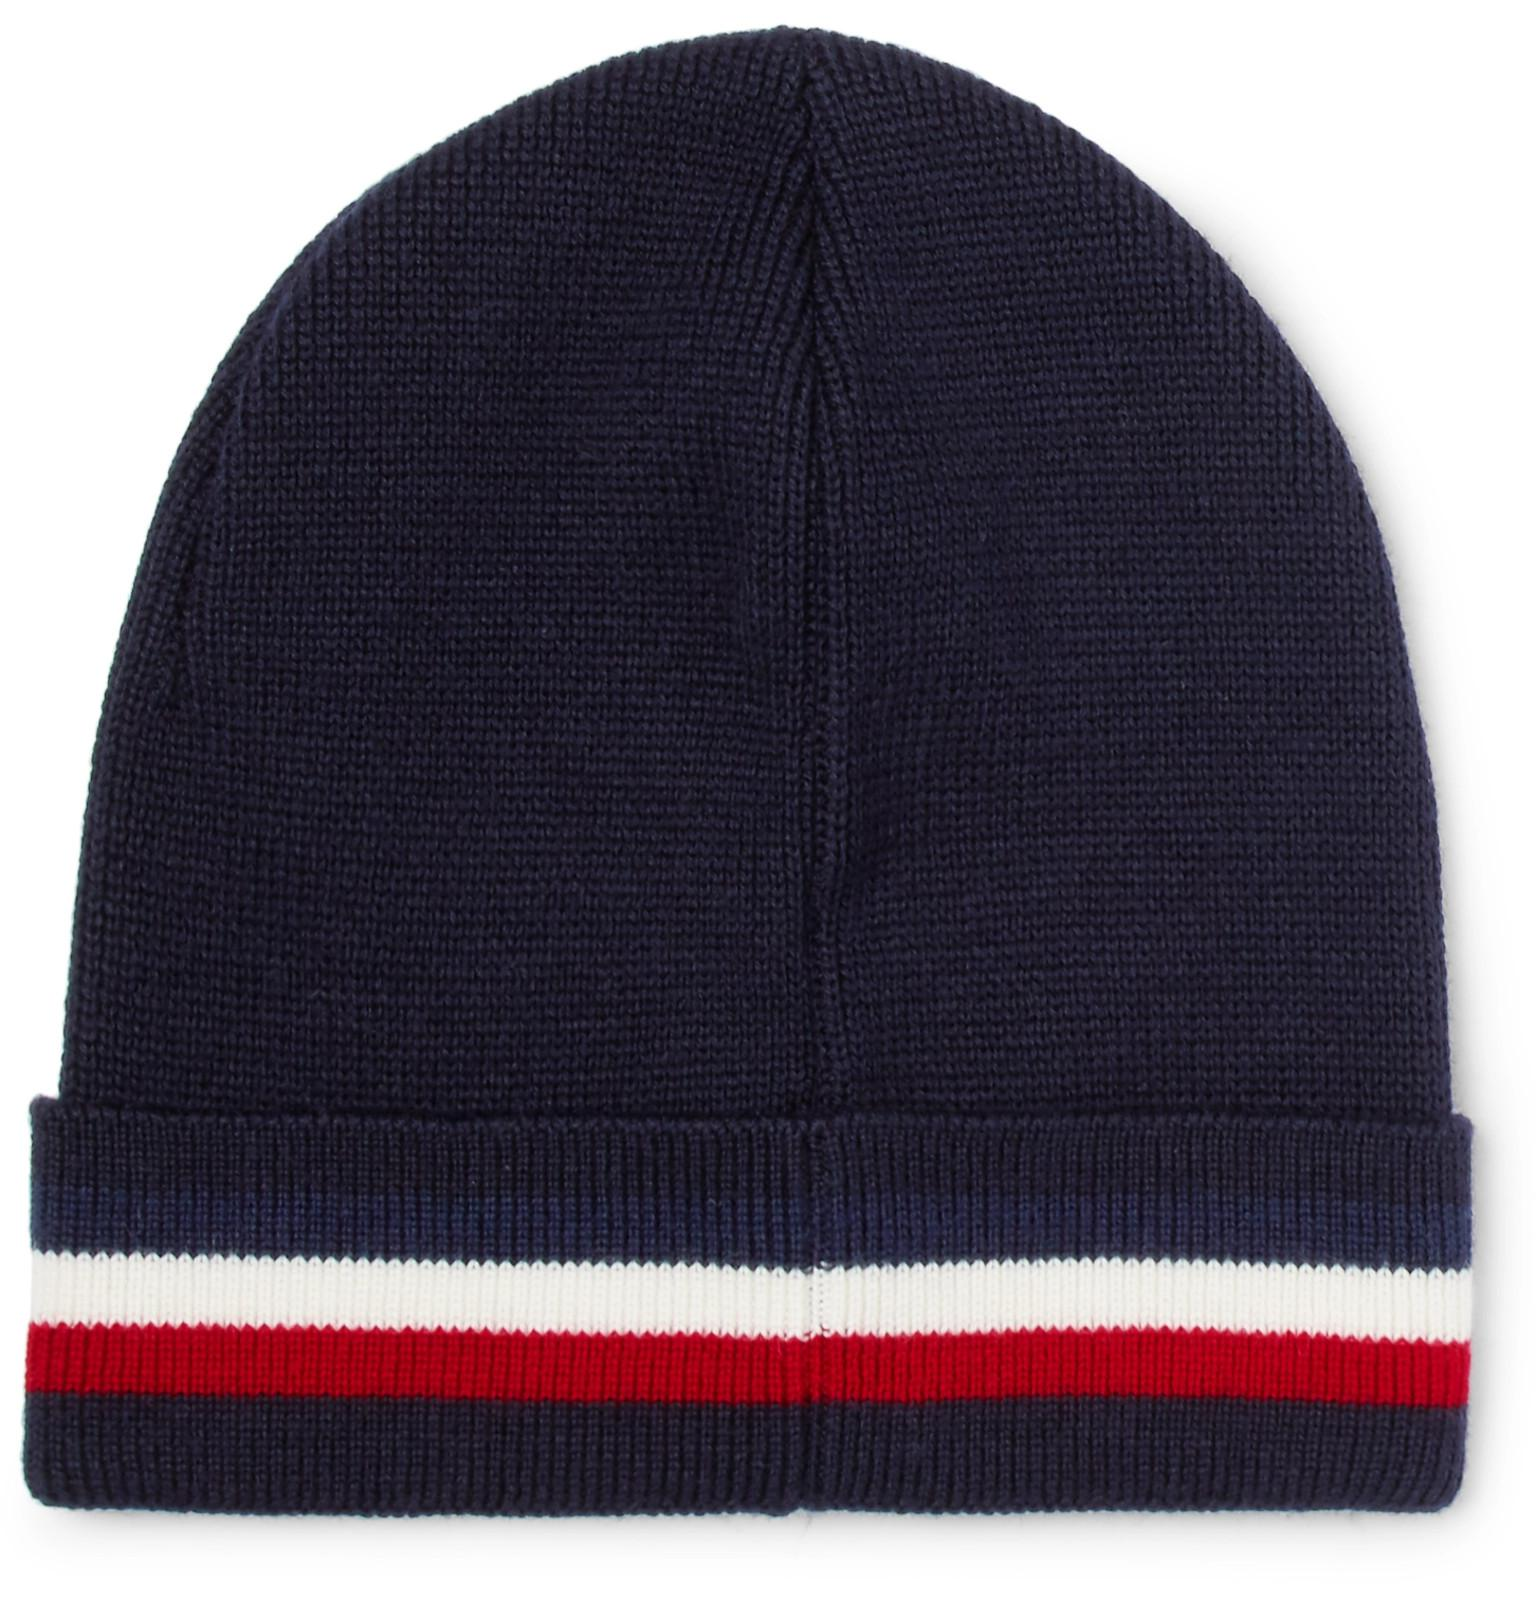 785c0a813b7 Moncler Berretto Stripe Wool Beanie in Blue for Men - Lyst